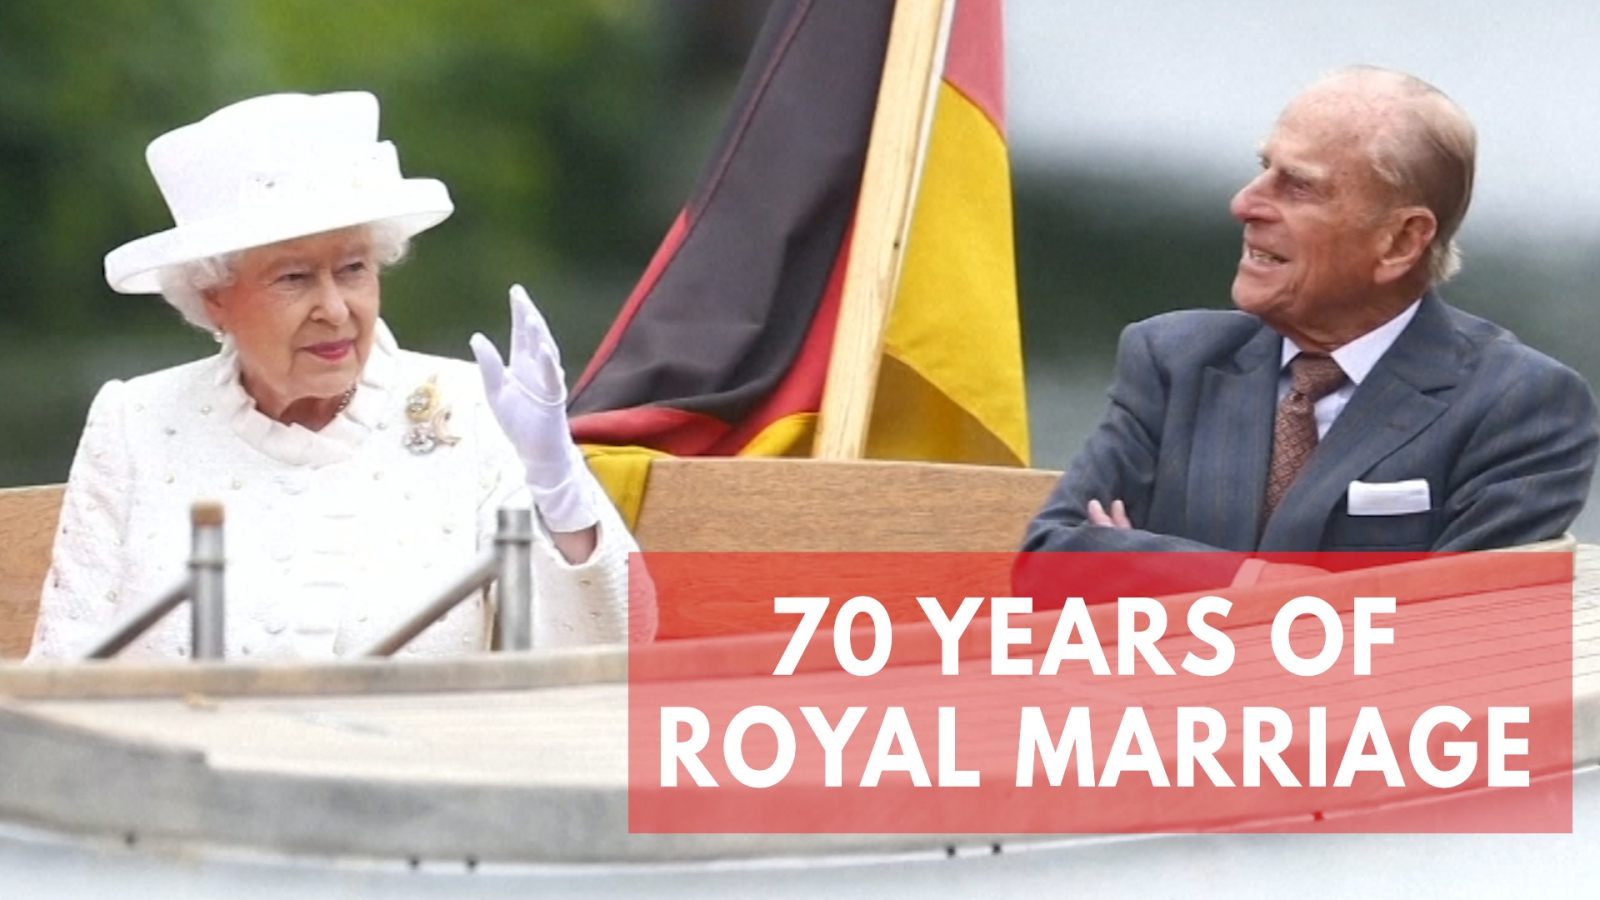 queen-elizabeth-ii-celebrates-70th-wedding-anniversary-with-prince-philip